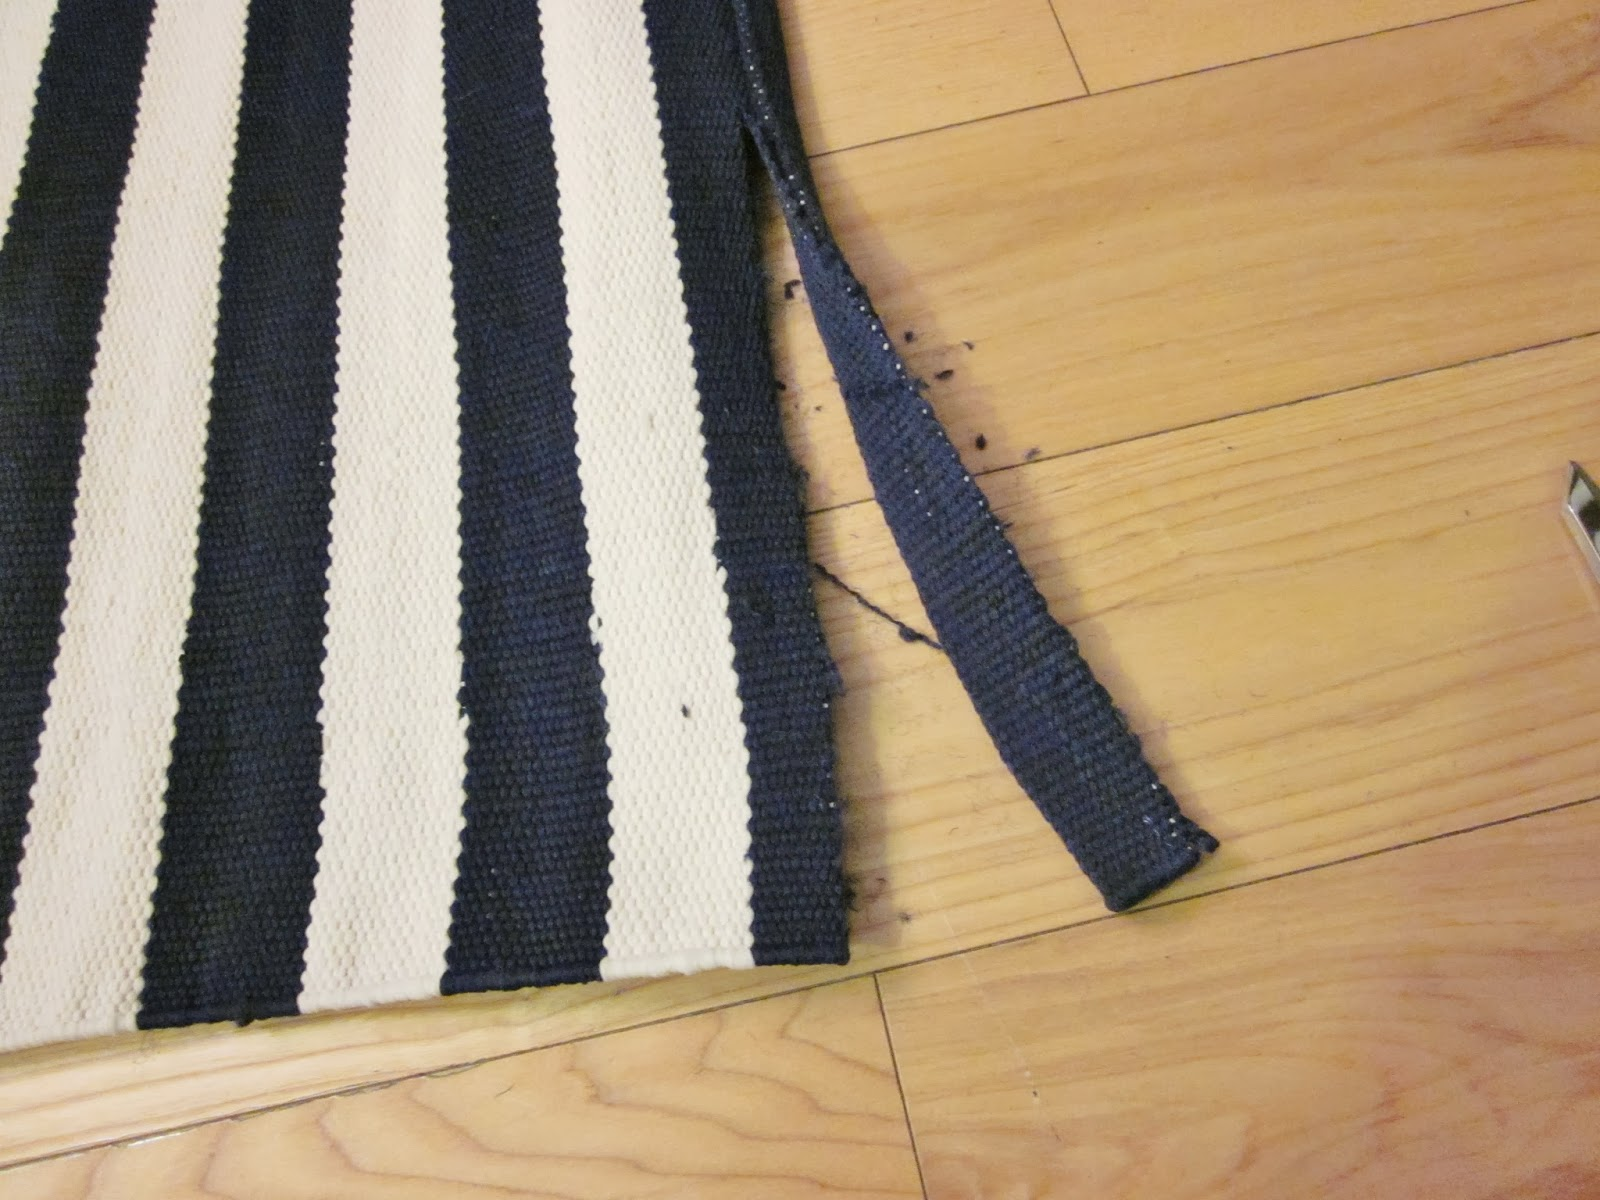 Then I Cut Off Enough So That Had Two Inches On The Rug Past Where Pinned It This Extra Length Gets Folded Over Twice To Prevent Fraying And Sewn